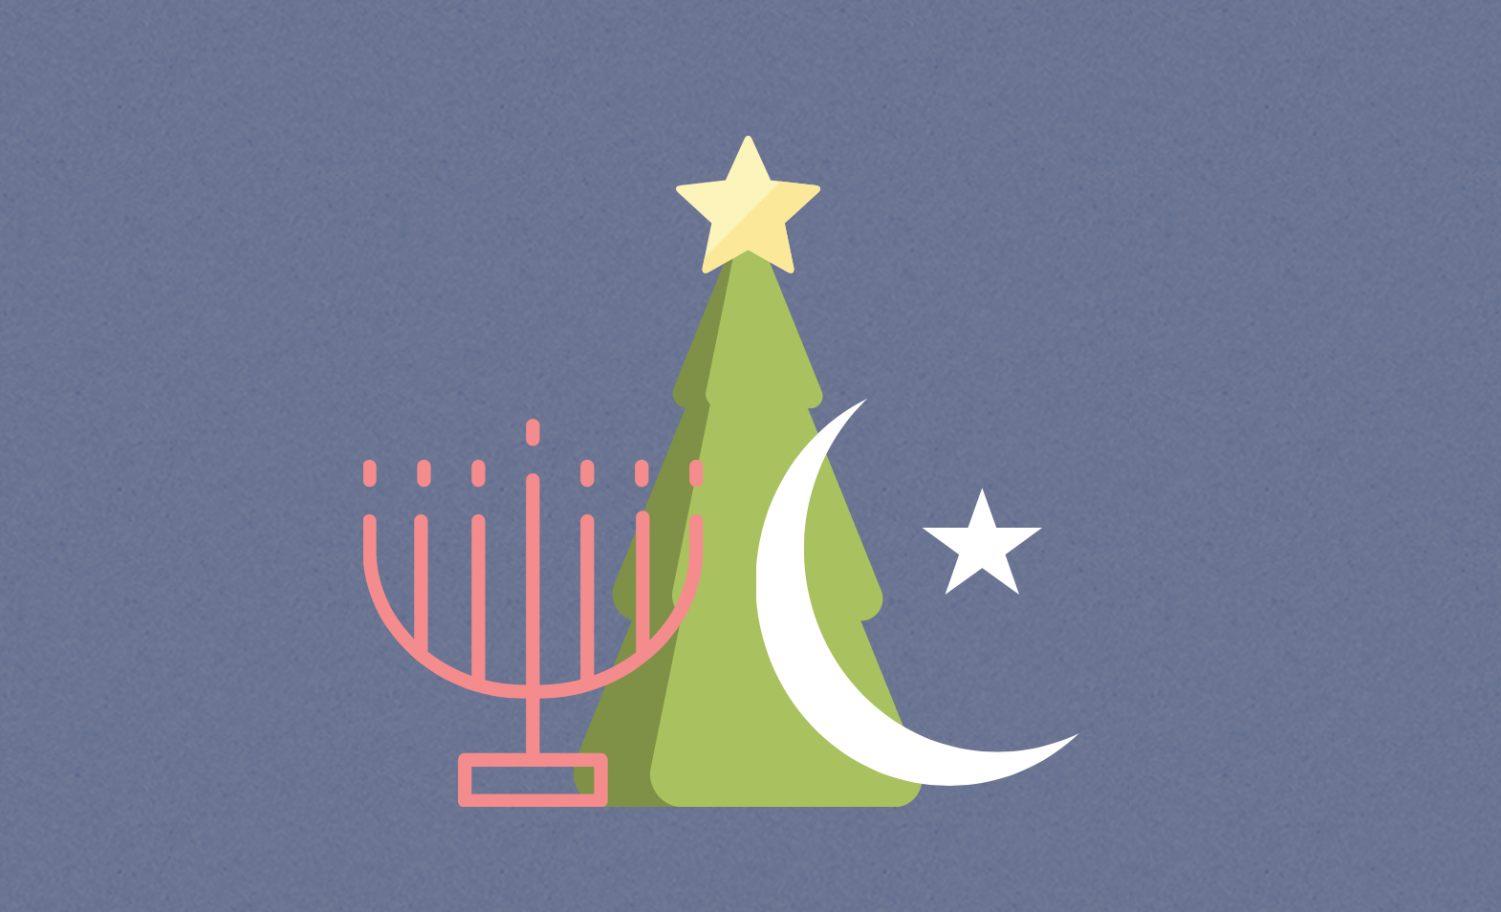 The school community continues in its efforts to respect those of all faiths through the discussion of religious holidays and their inclusion in the school calendar.